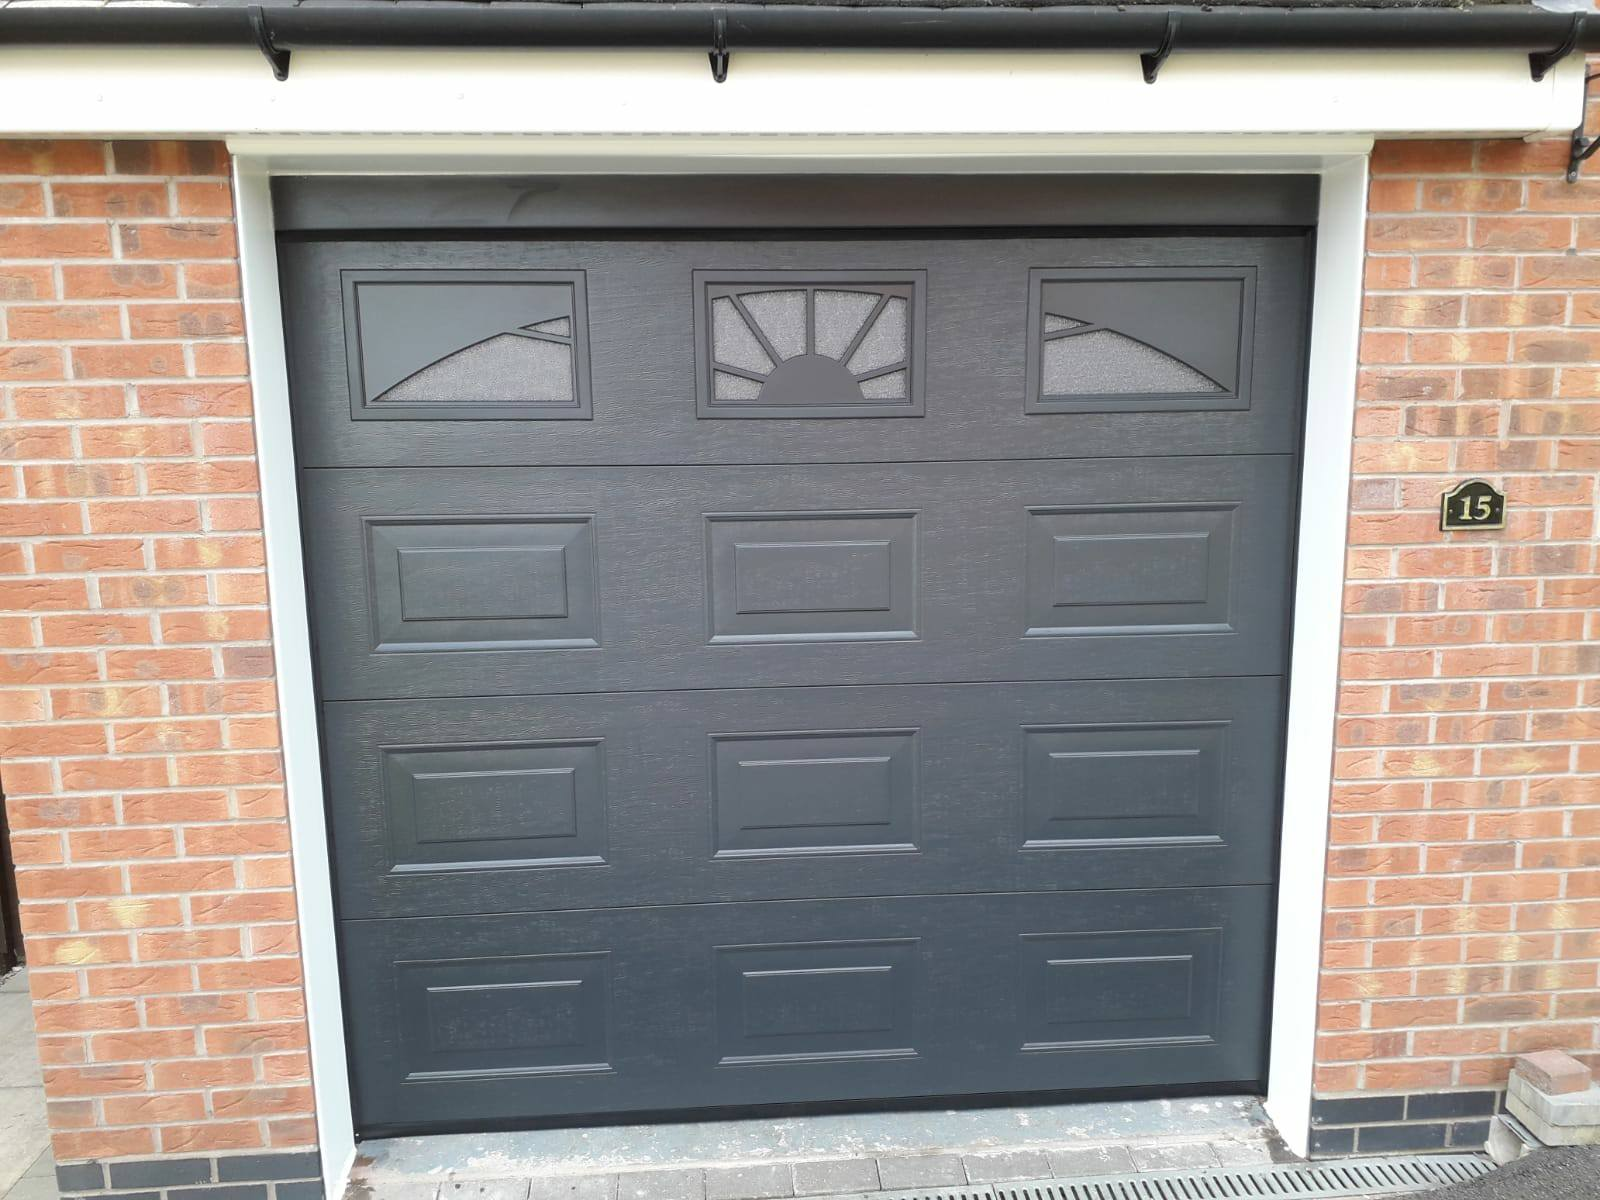 1 x single sectional garage door, powder coated anthracite grey in a woodgrain finish with sunrise windows